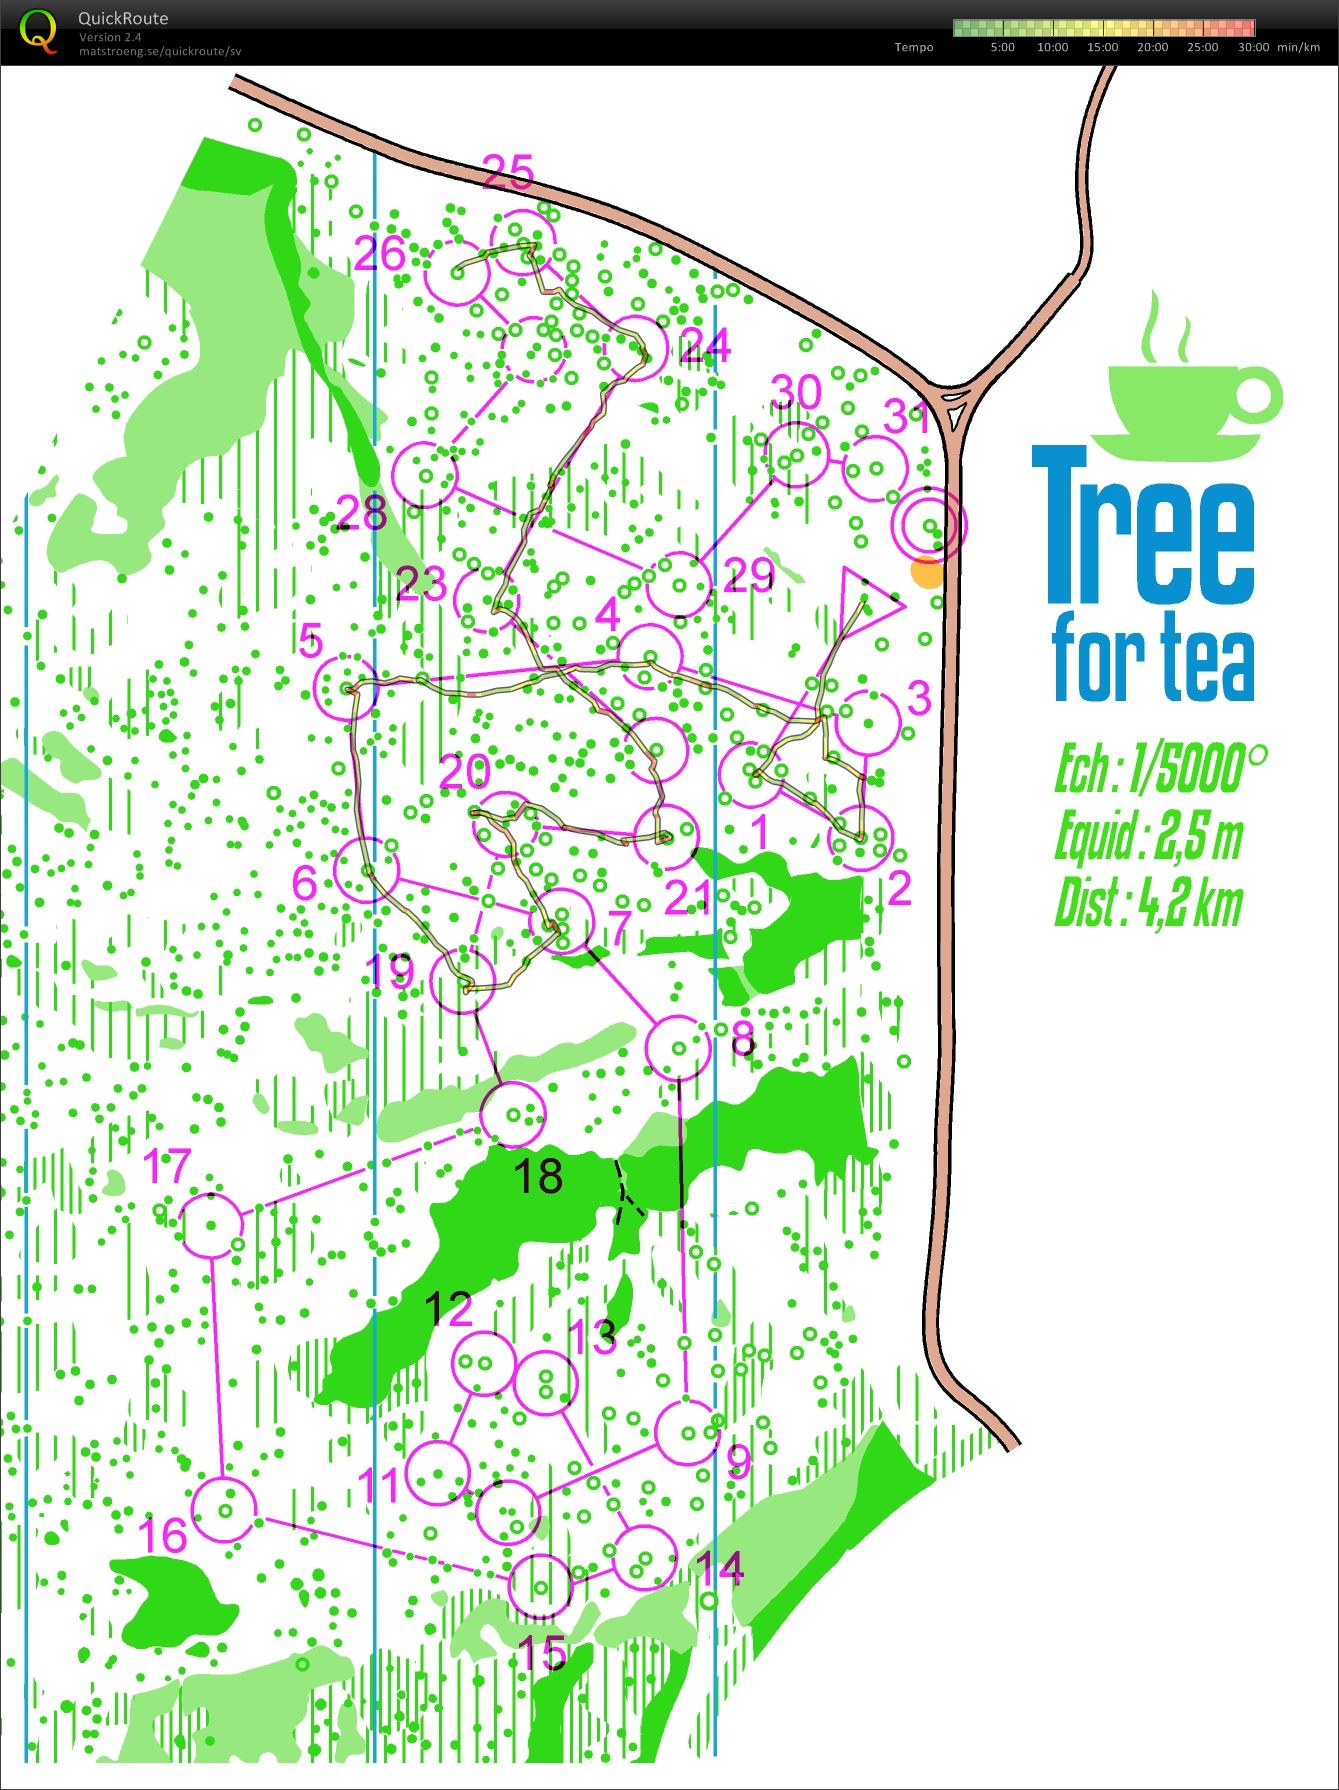 Tree for Tea (21/01/2016)